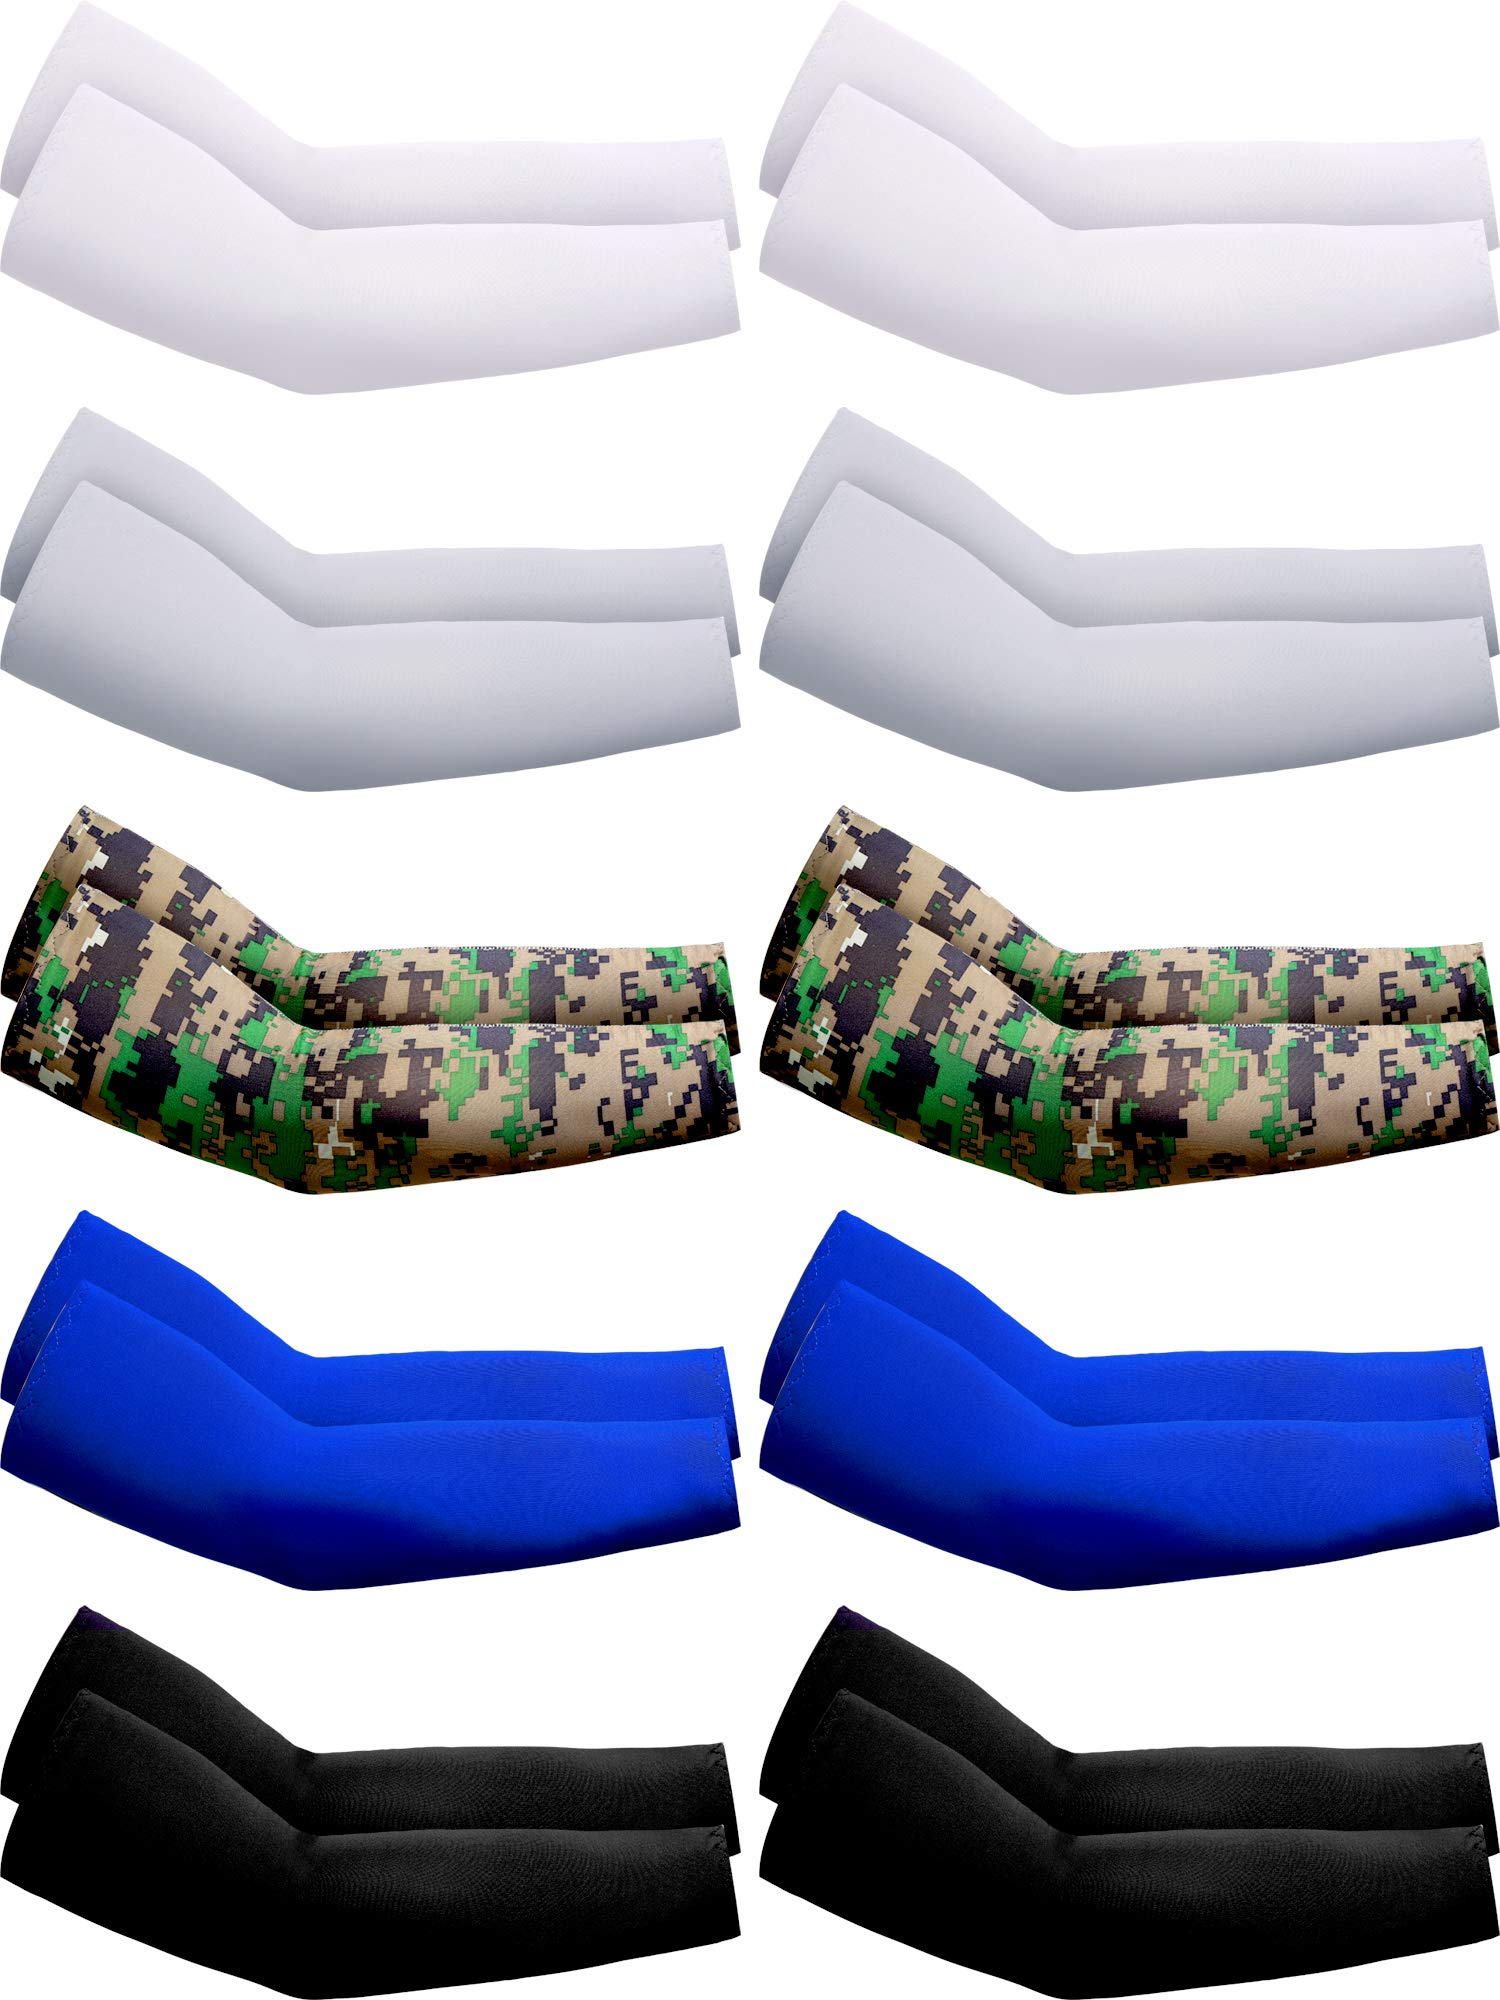 10 Pairs UV Protection Cooling Arm Sleeves Anti-Slip Ice Silk Arm Cover for Men (Color Set 1)